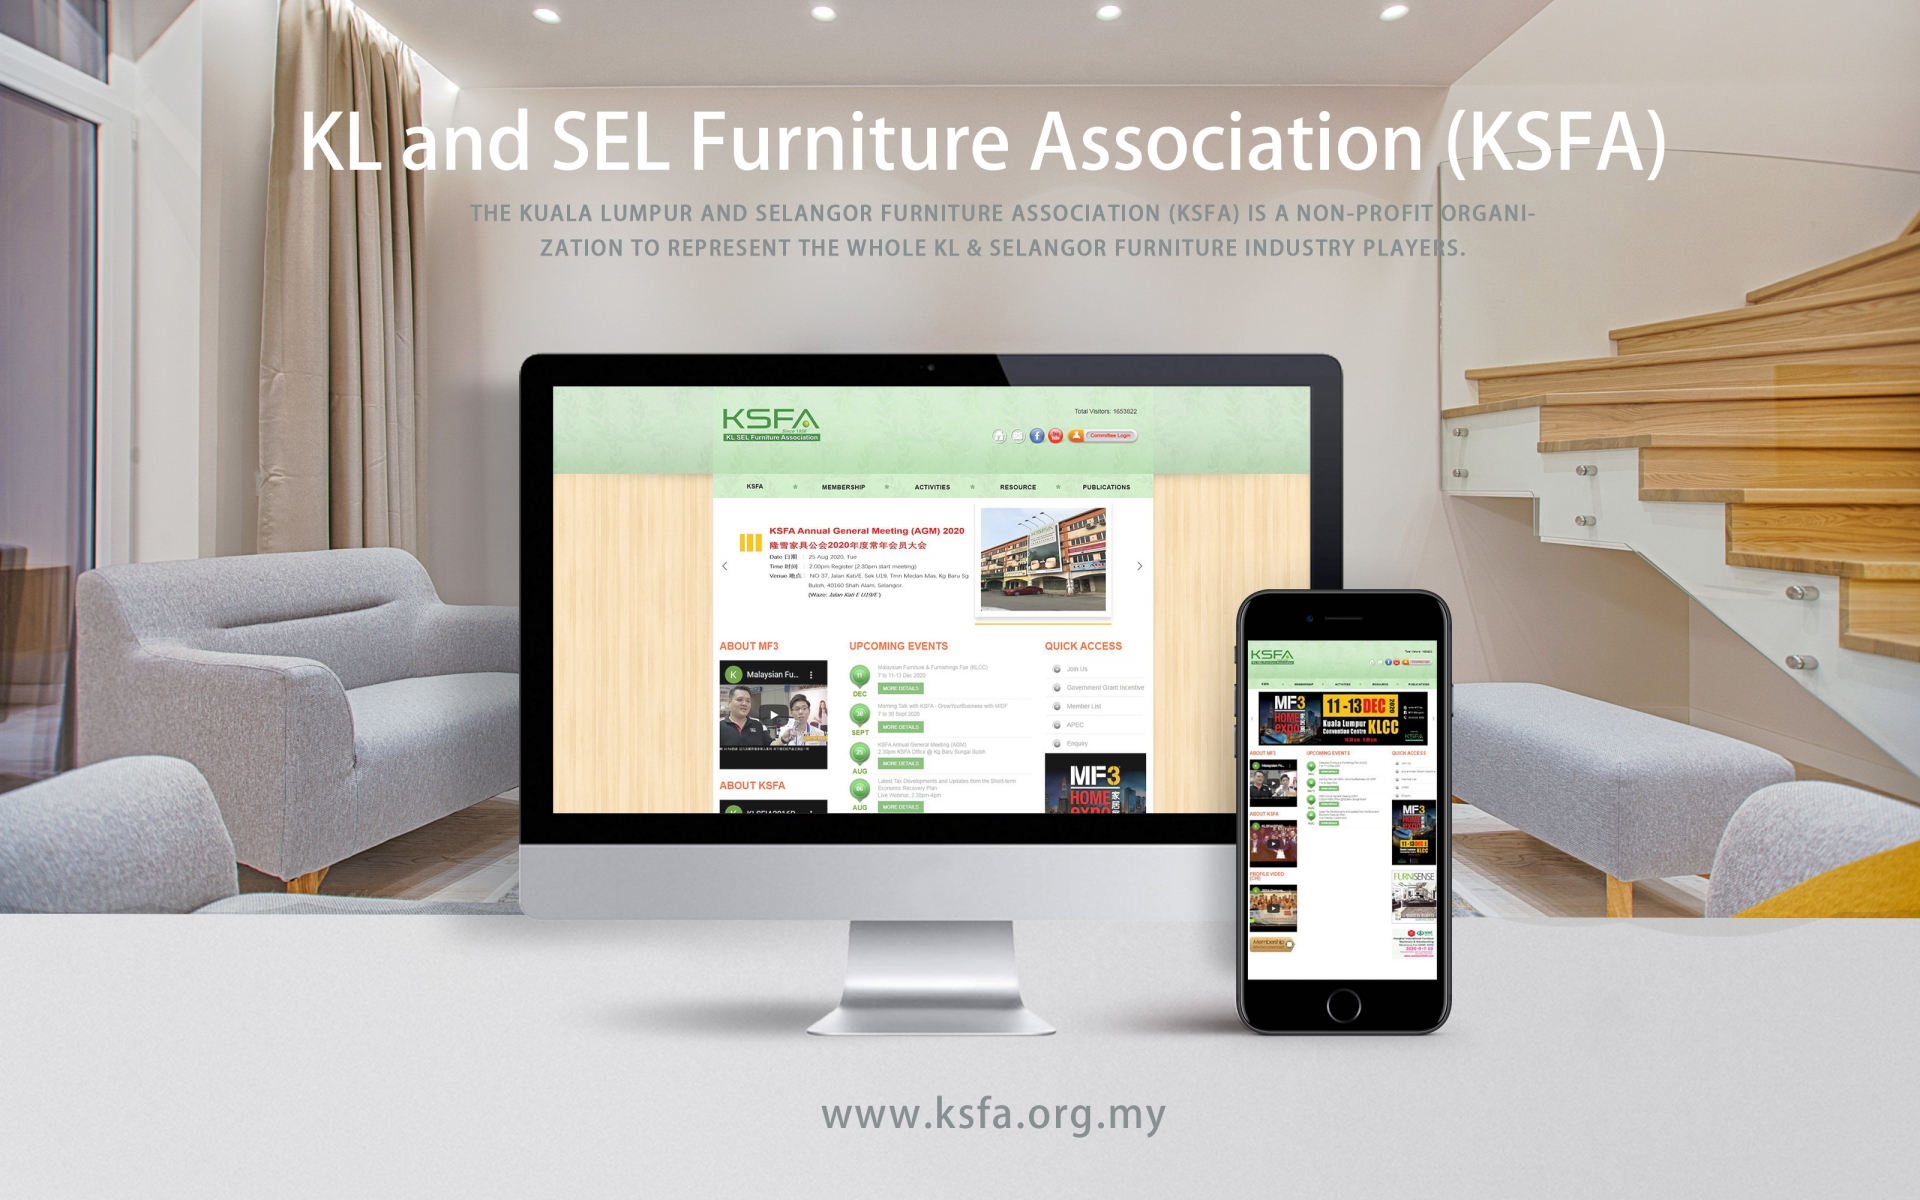 "<a href=""http://welcome.ksfa.org.my"" target=""_blank"">Kuala Lumpur and Selangor Furniture Association (KSFA)</a>"